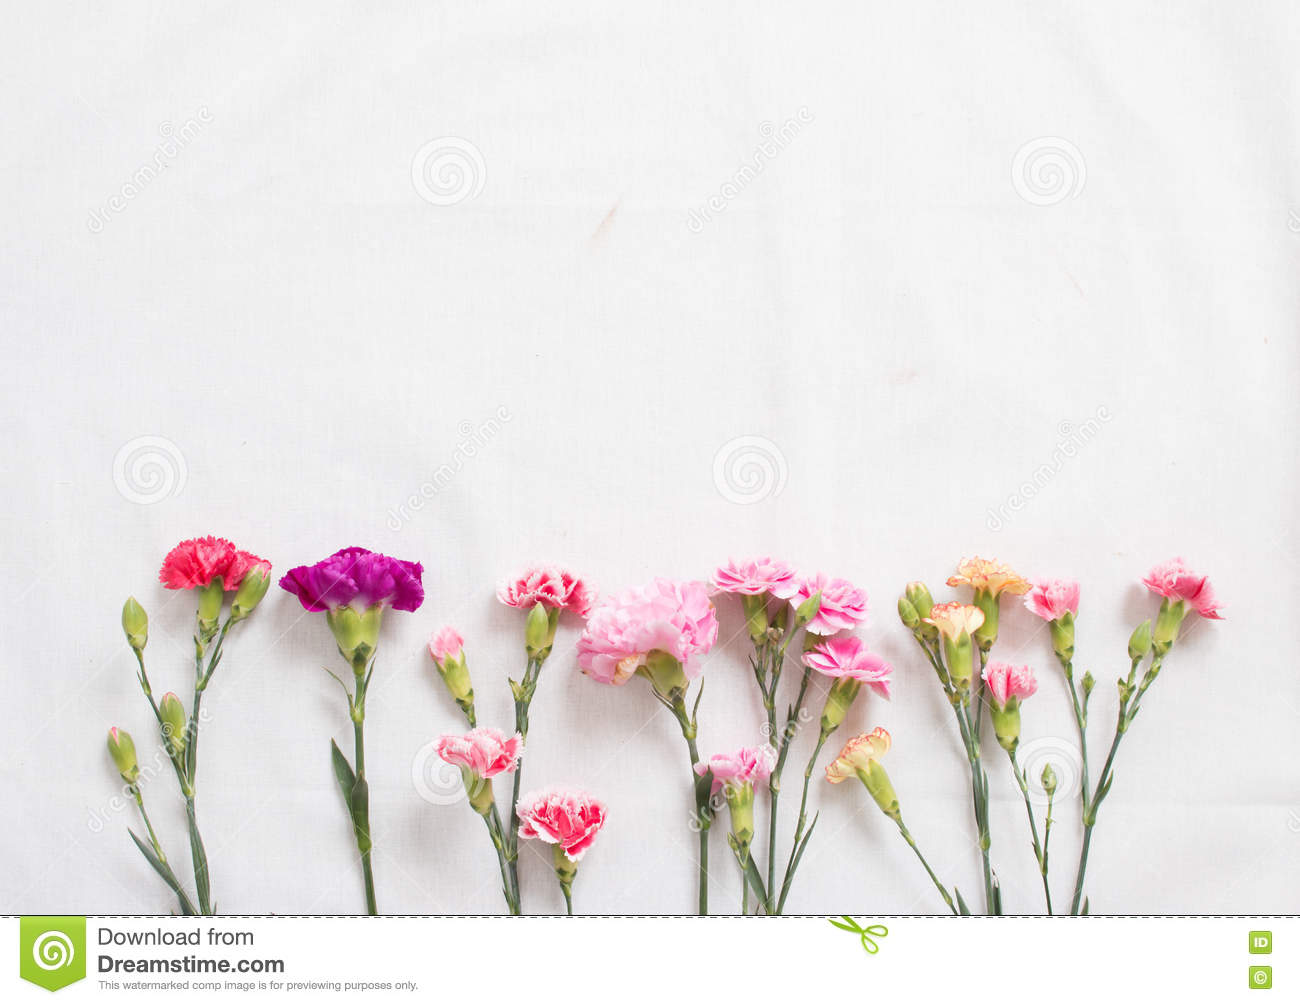 how to make carnations bloom faster